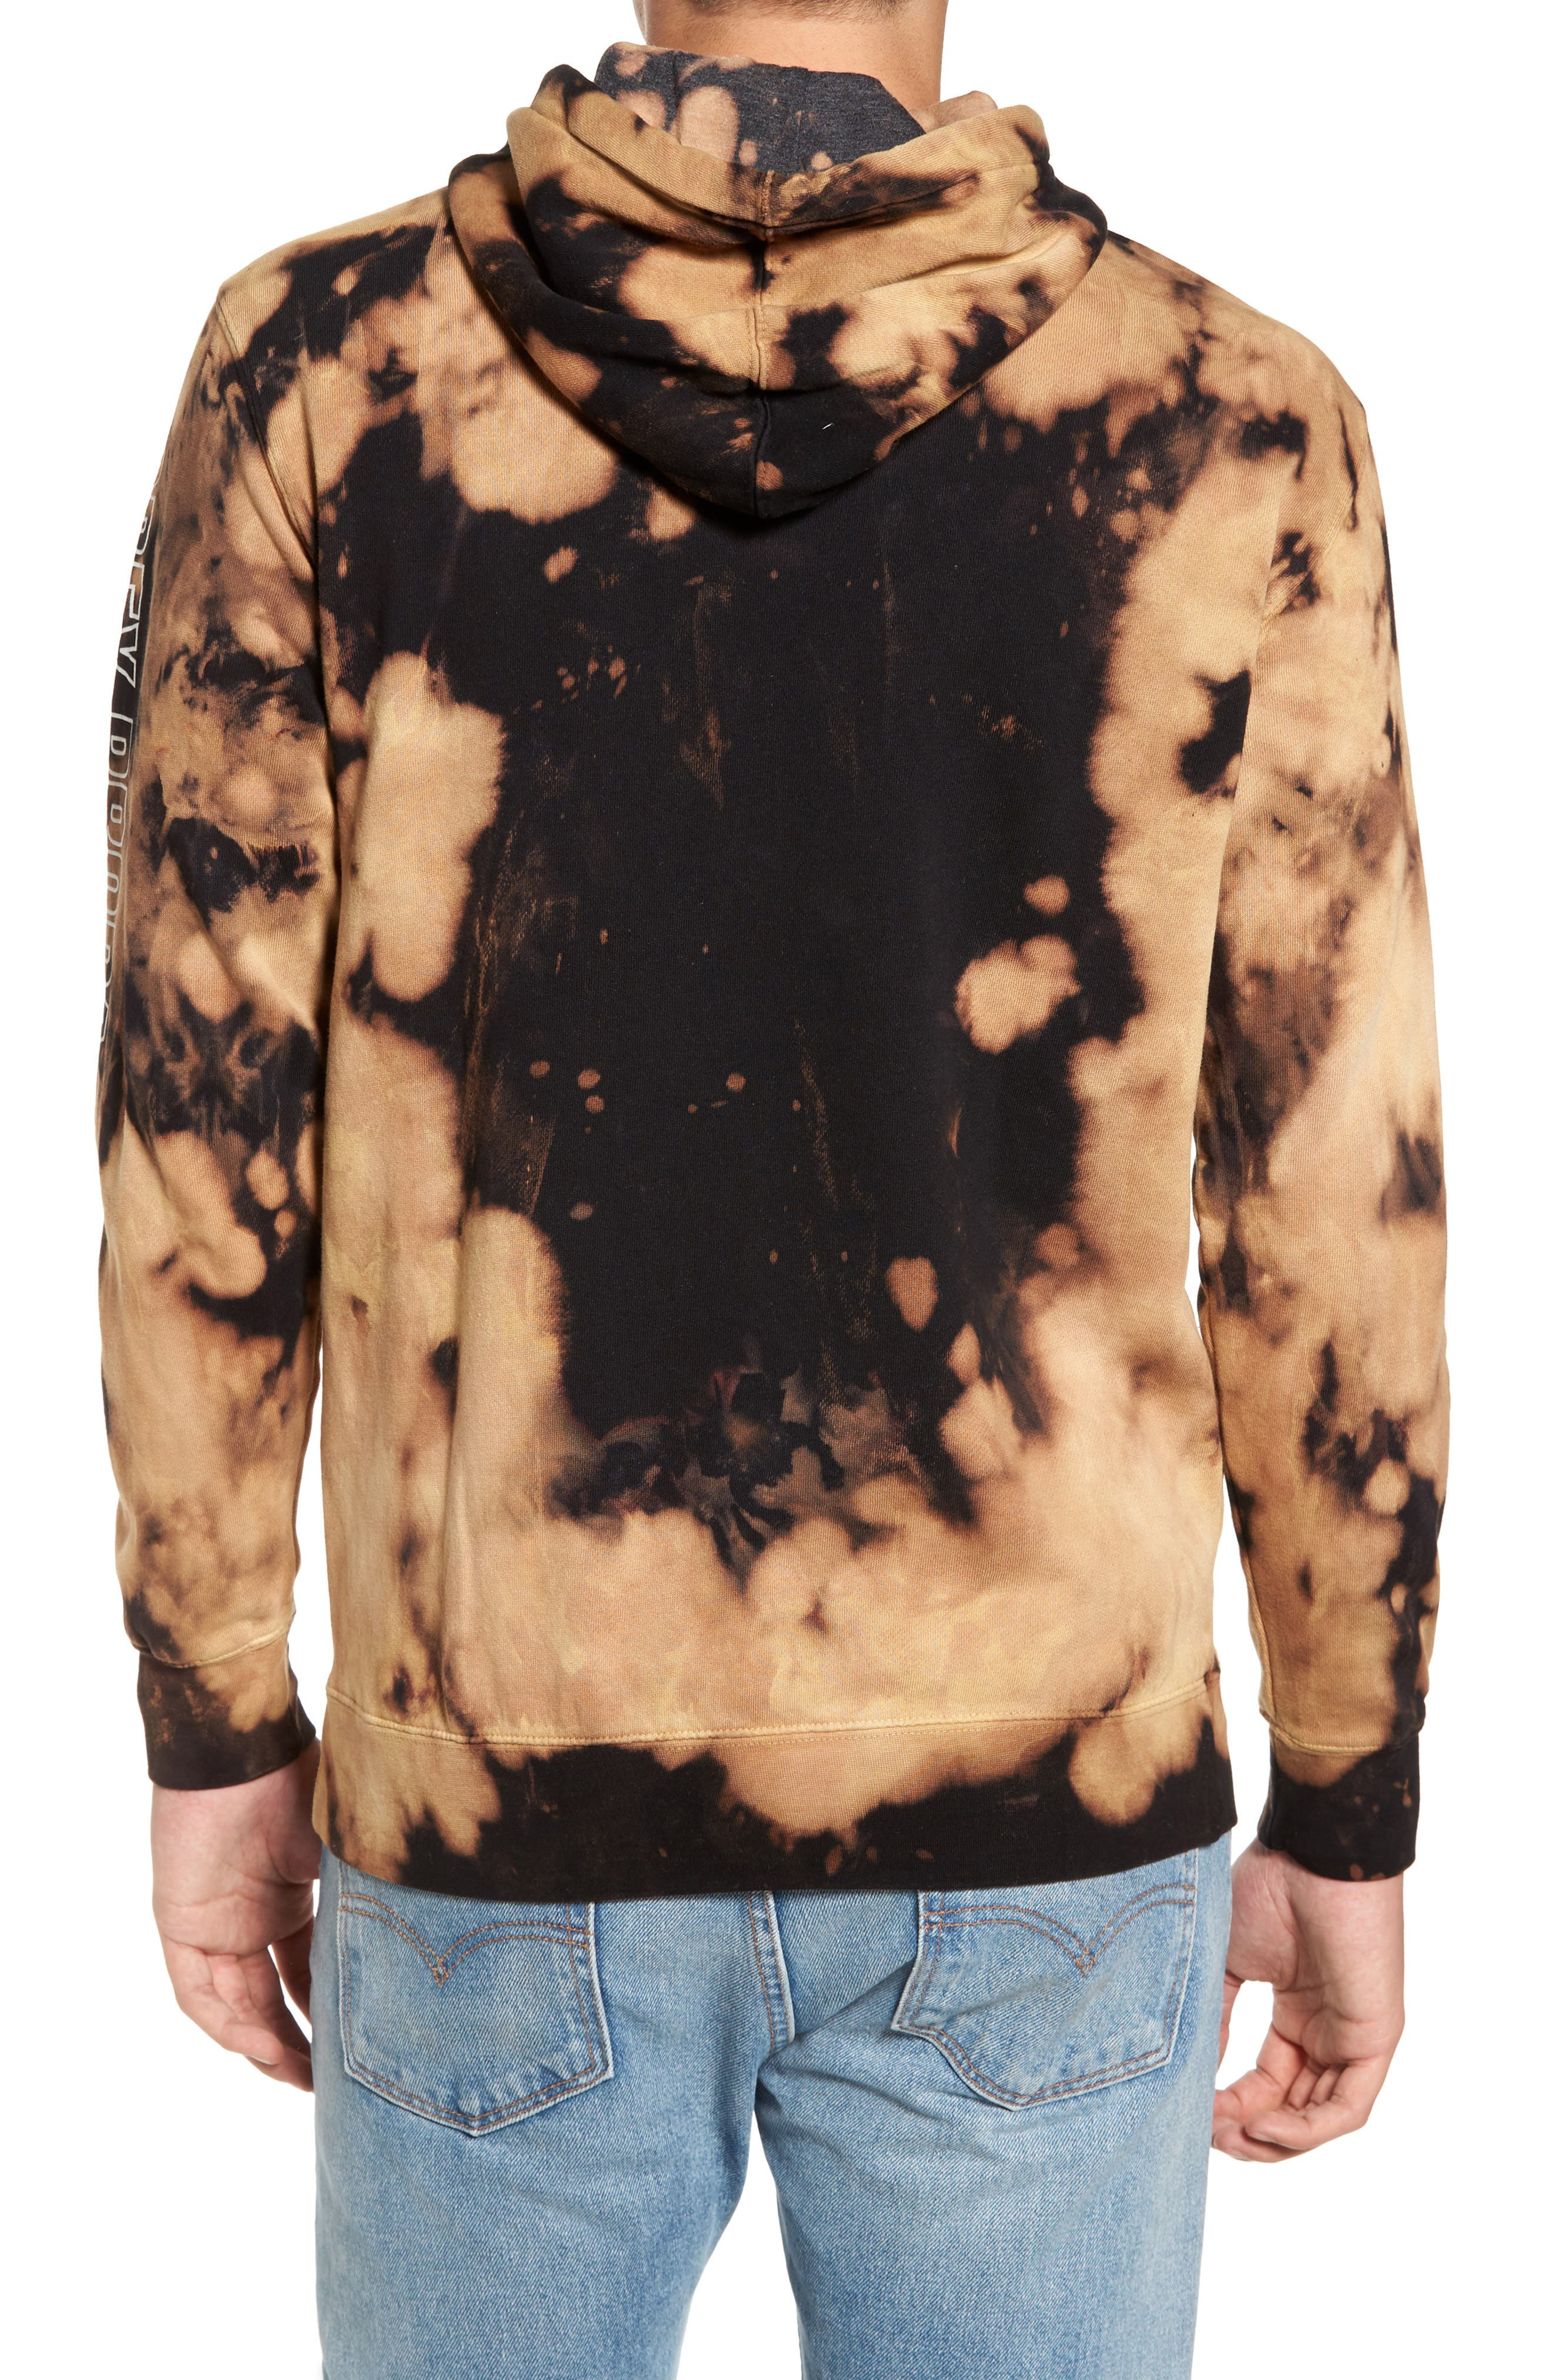 Rough Draft Tie Dye Fleece Hoodie,                             Alternate thumbnail 2, color,                             001